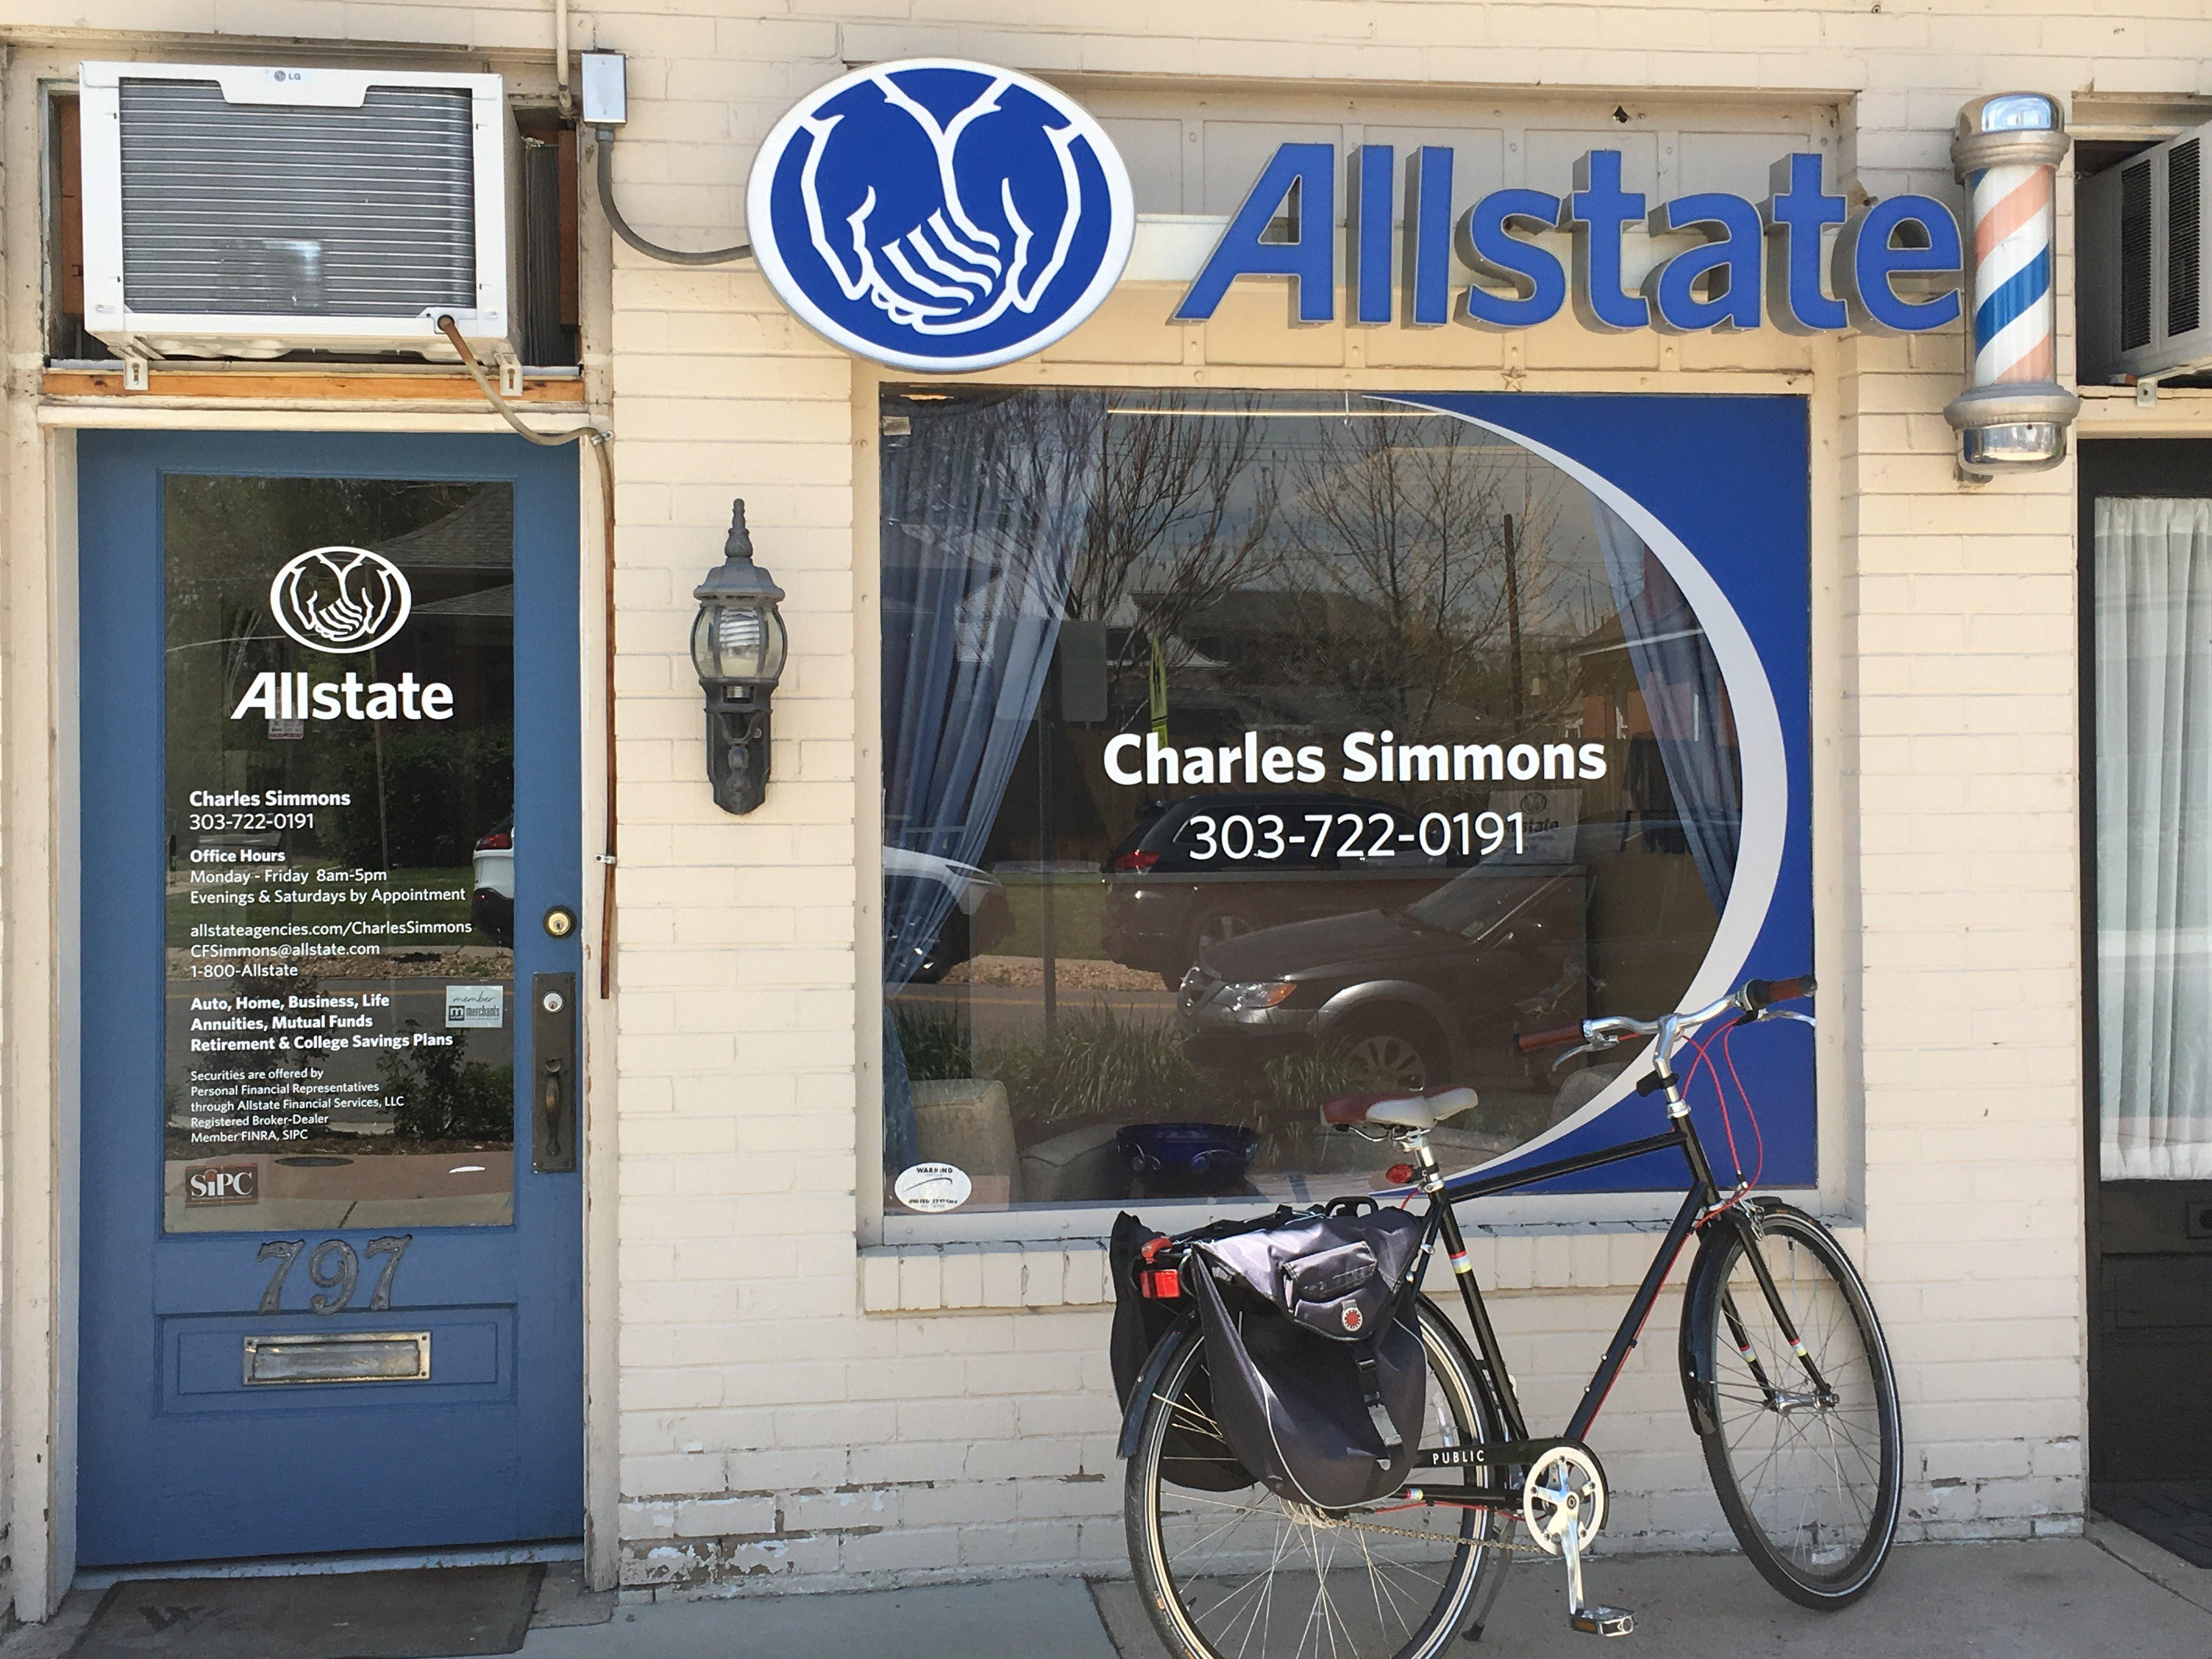 Charles F. Simmons: Allstate Insurance image 1